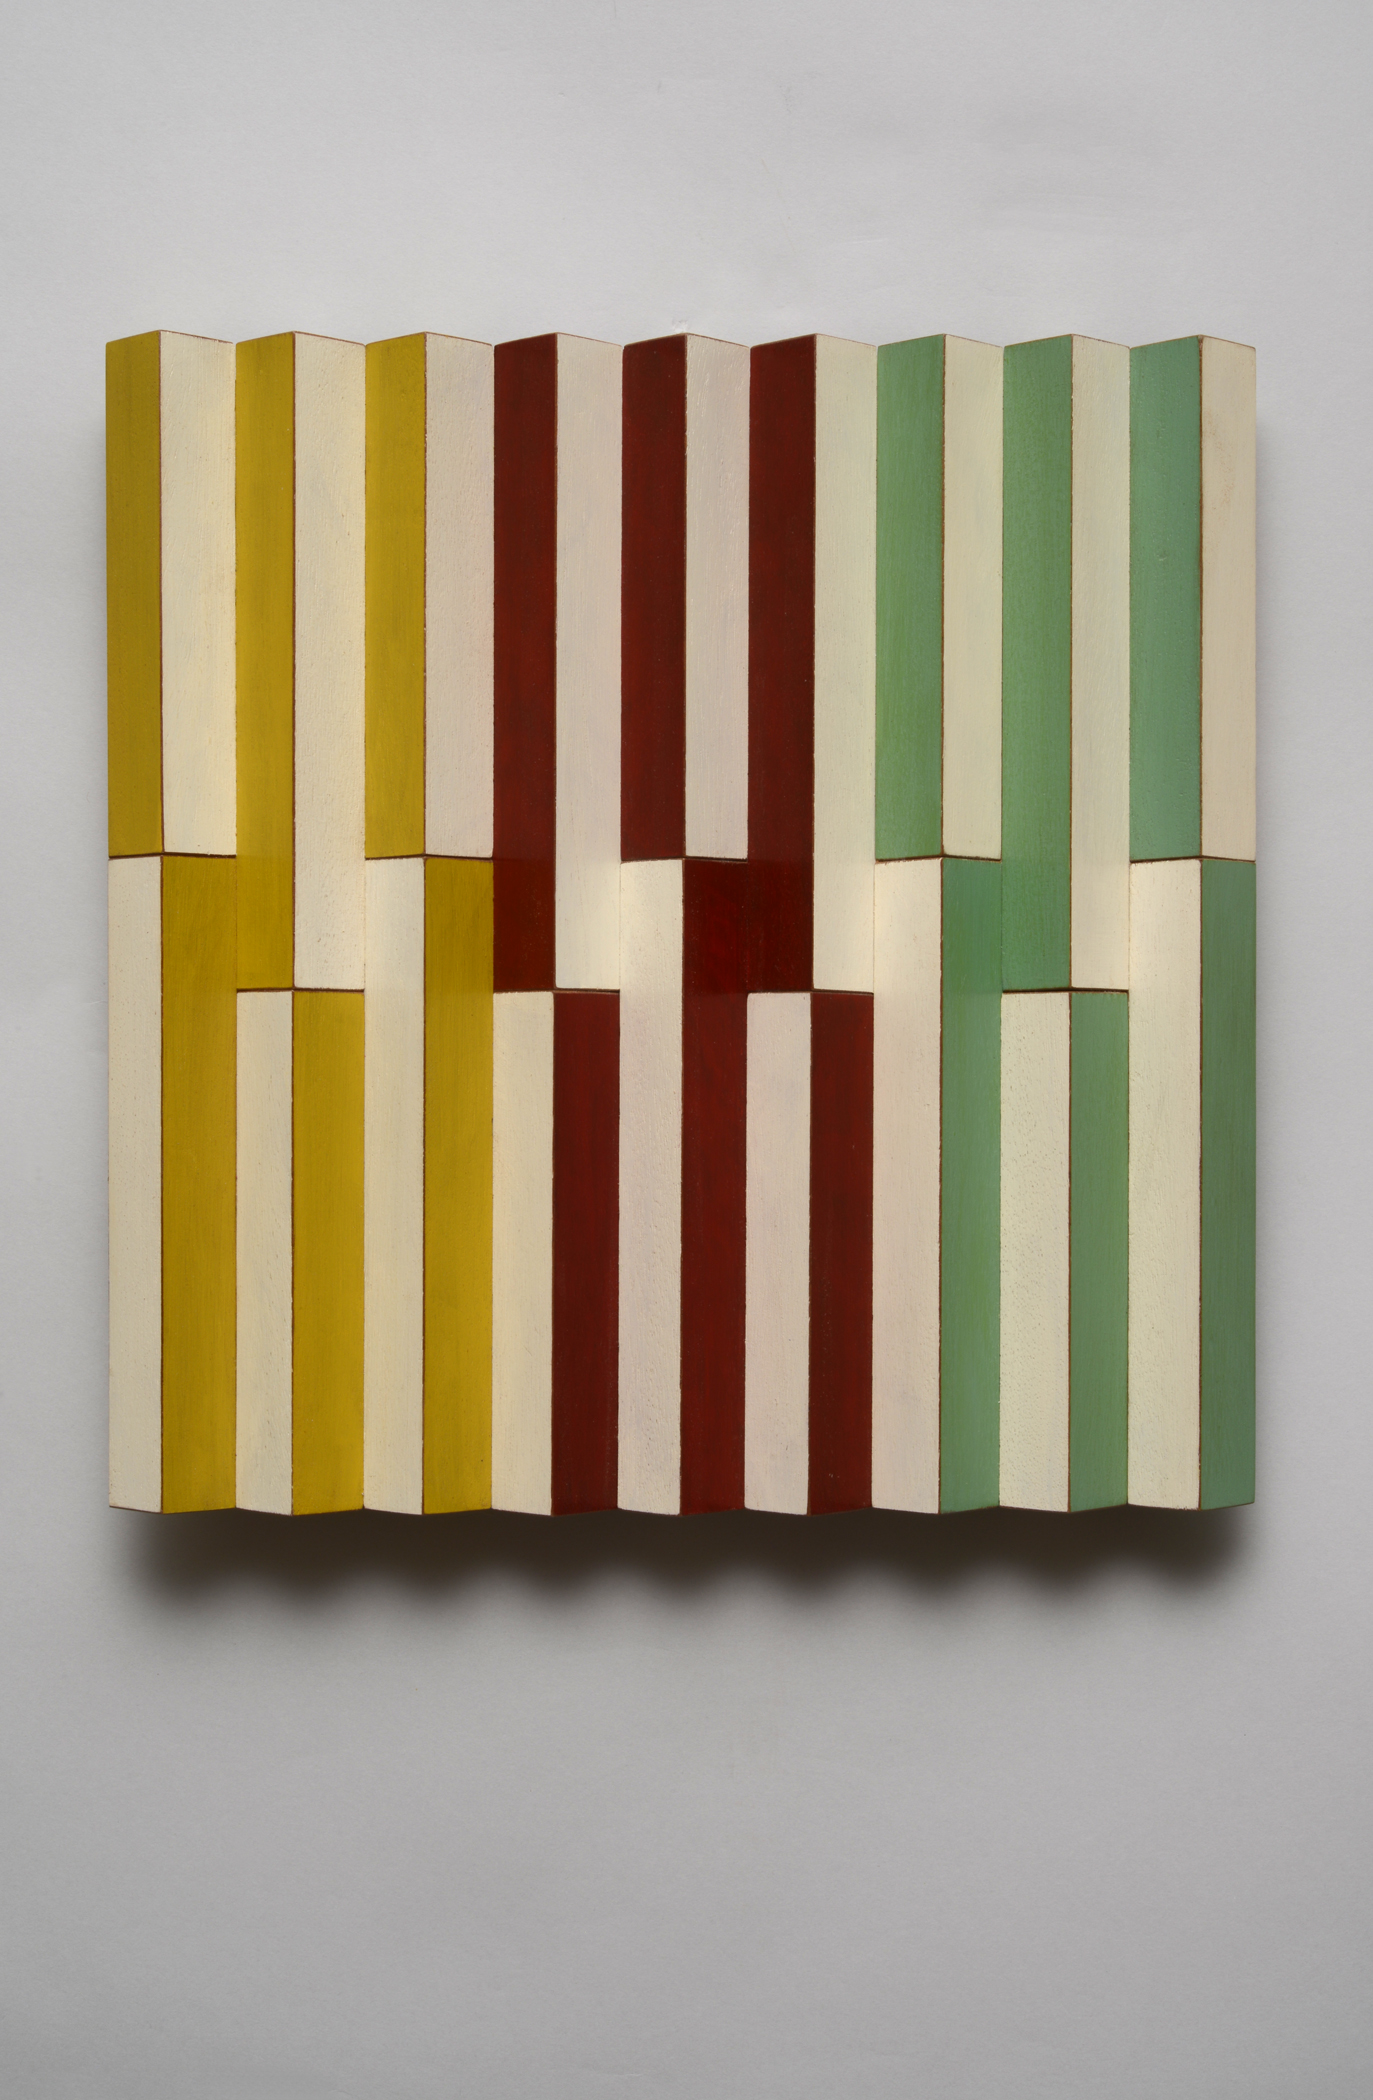 "Evenly Uneven (Center)  Emi Ozawa, 2014  Acrylic on Mahogany  10 1/2""H x10 1/4""W x 1 1/2""D"